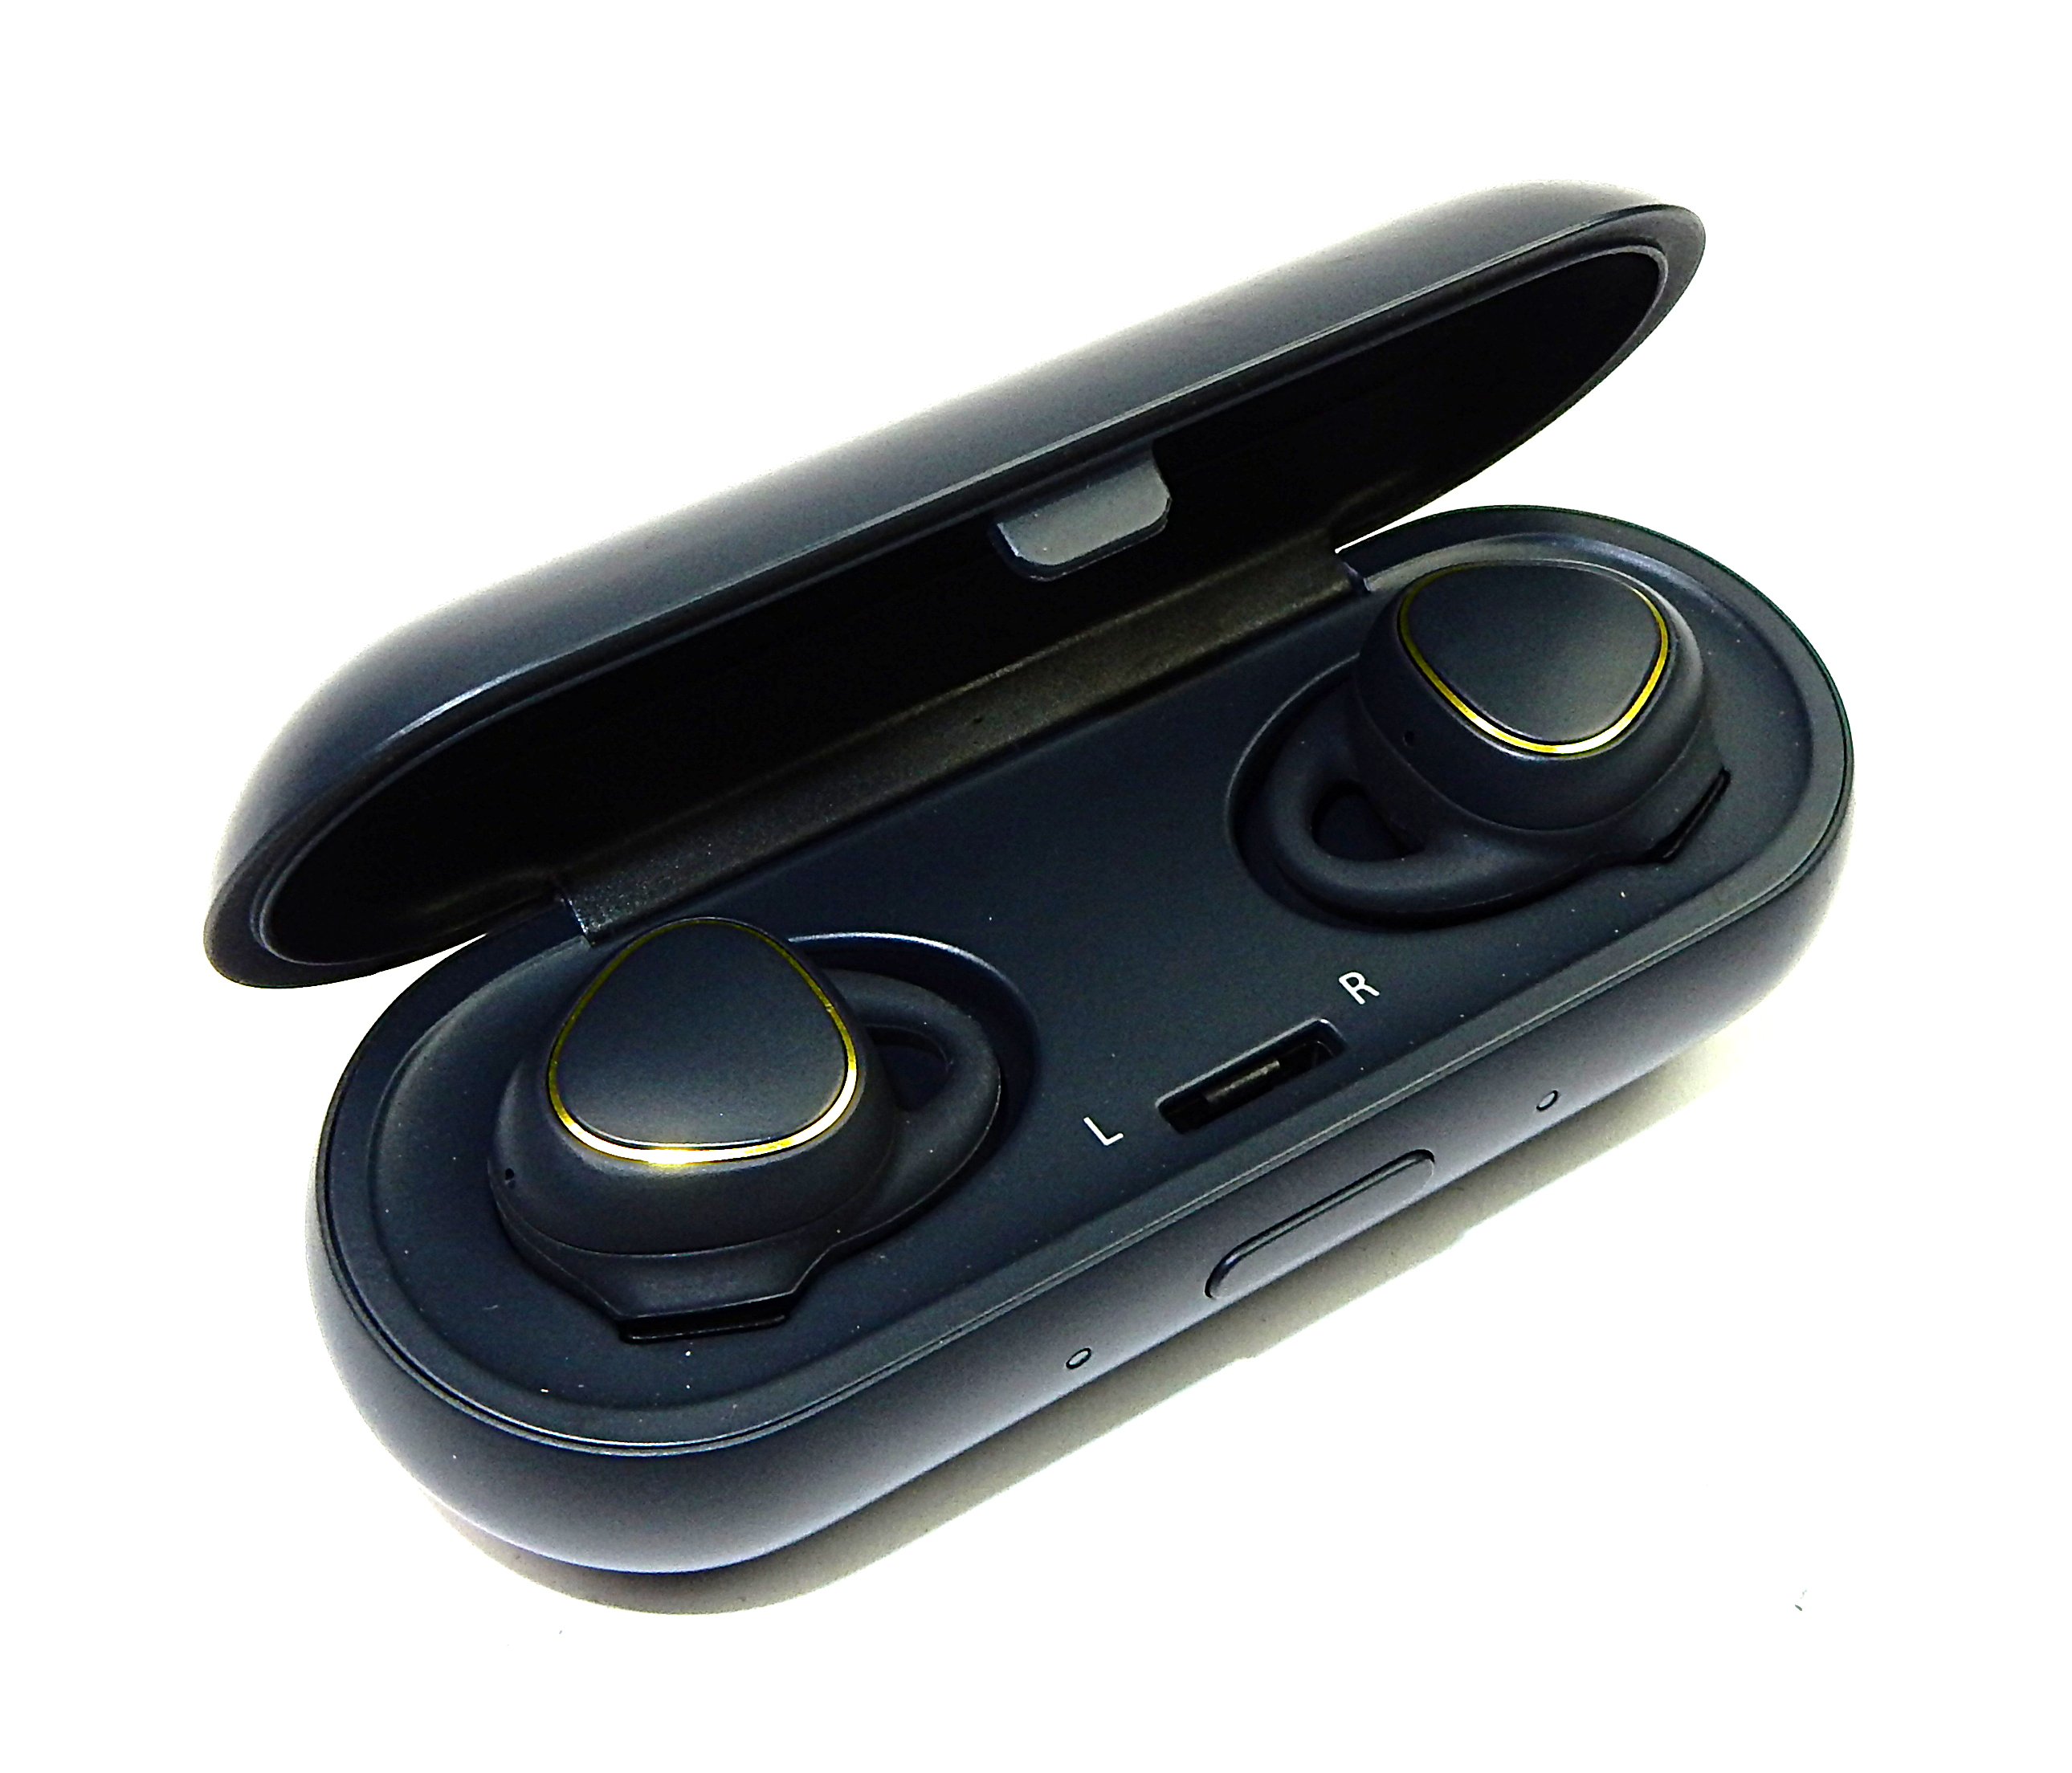 Wondrous Samsung Sm R150 Gear Iconx Wireless Sports In Ear Headphones Interior Design Ideas Truasarkarijobsexamcom